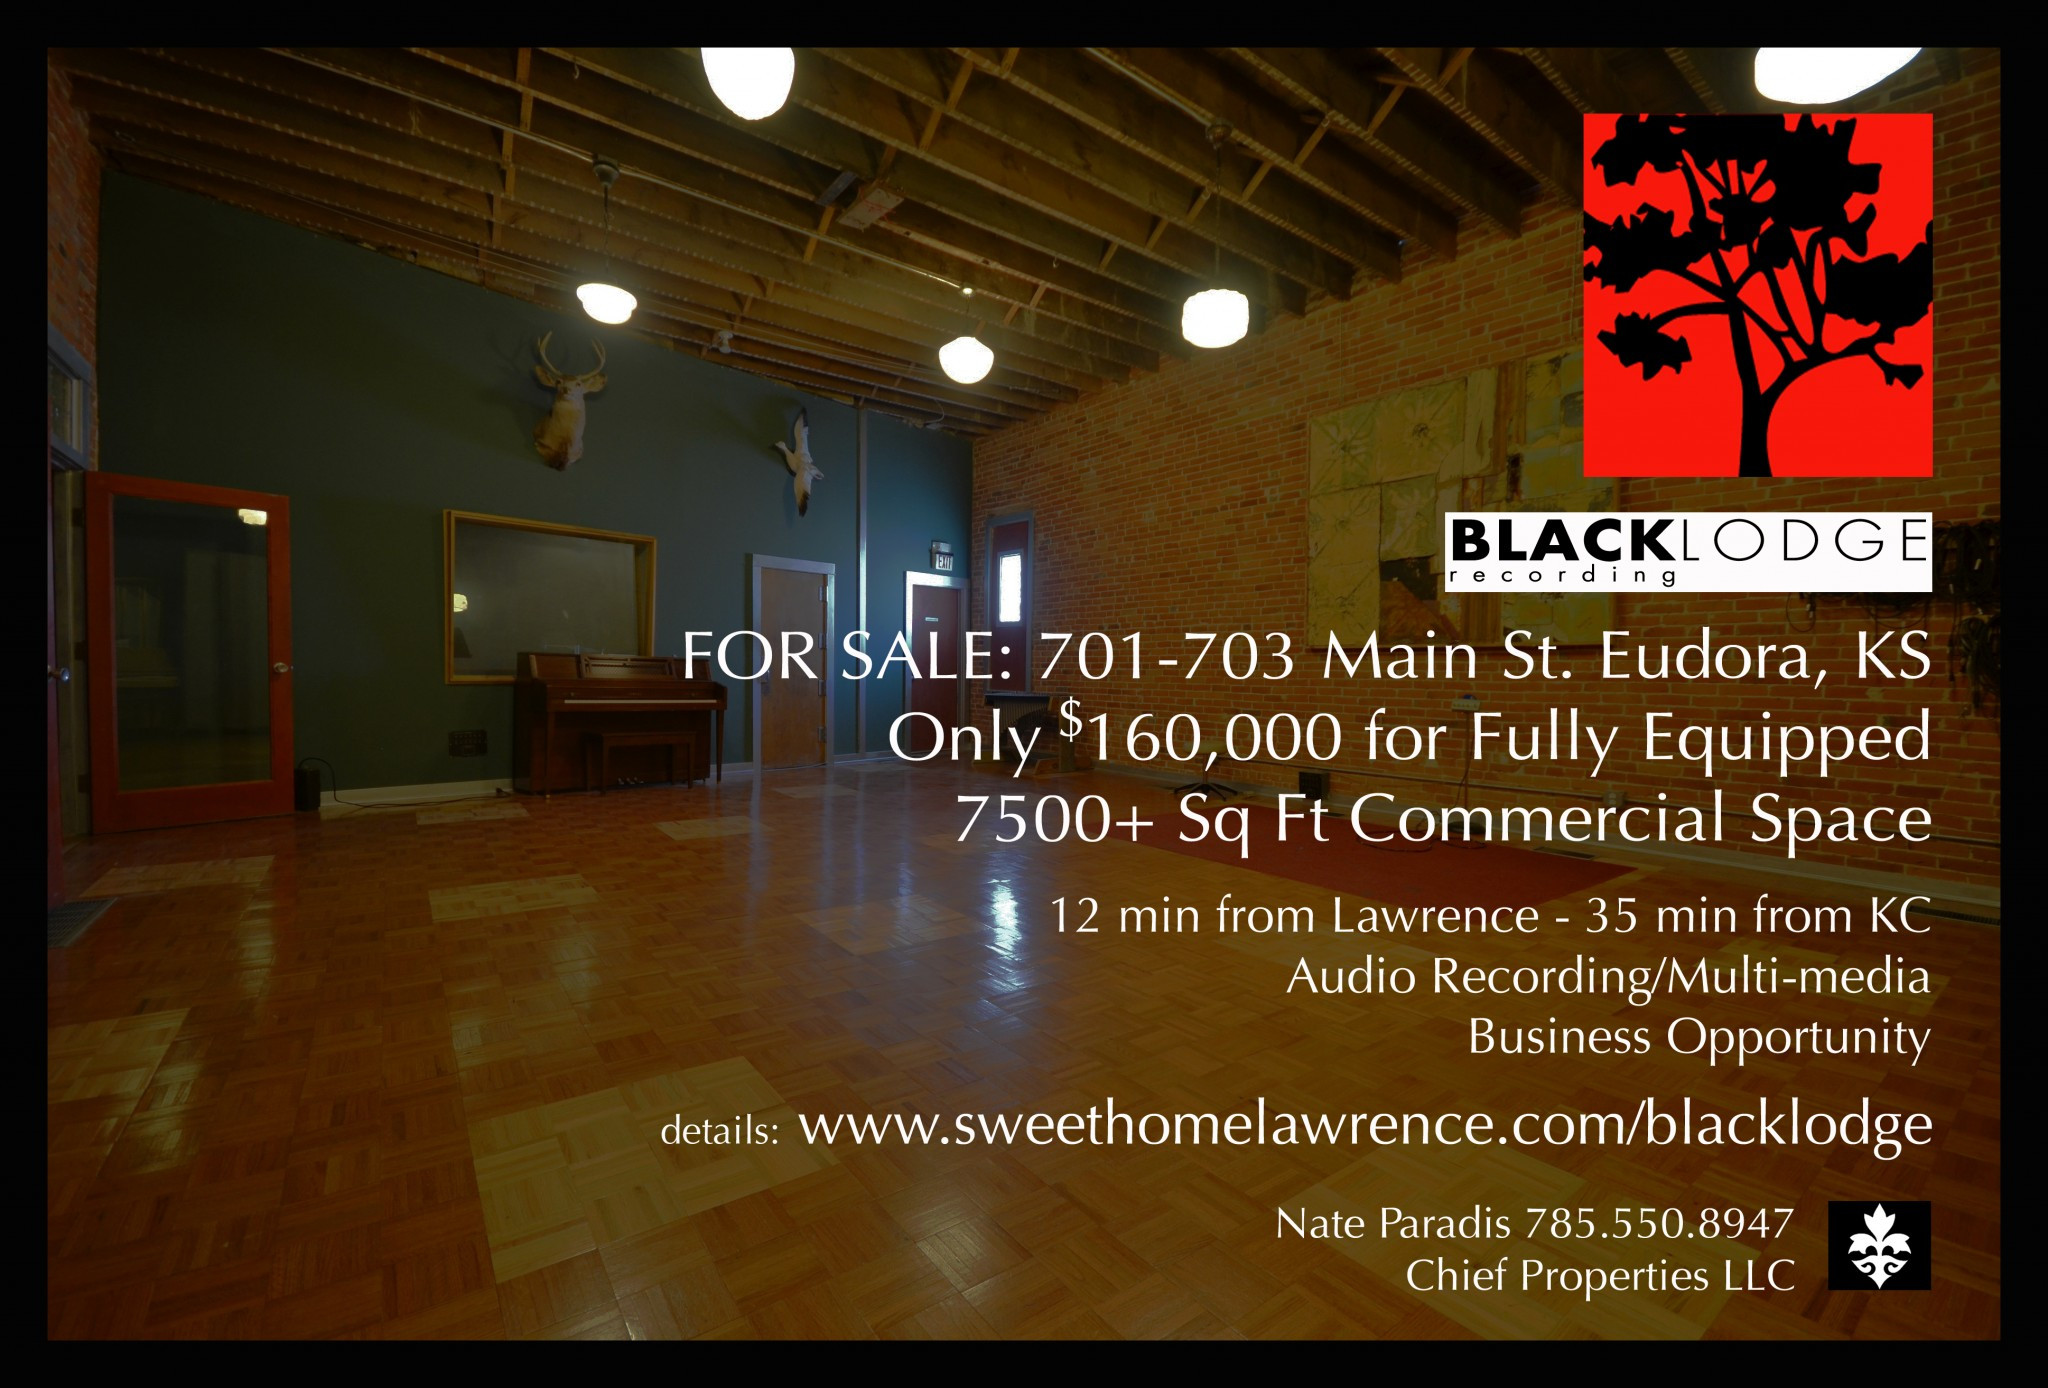 Hardwood Flooring Suppliers Kansas City Of sold Black Lodge Recording Studio • 701 703 Main St Eudora Ks with Currently Home to Renowned Black Lodge Recording Studio 701 703 Main St In Beautiful Downtown Eudora Ks Can Be Yours This Site Home Of the Historic